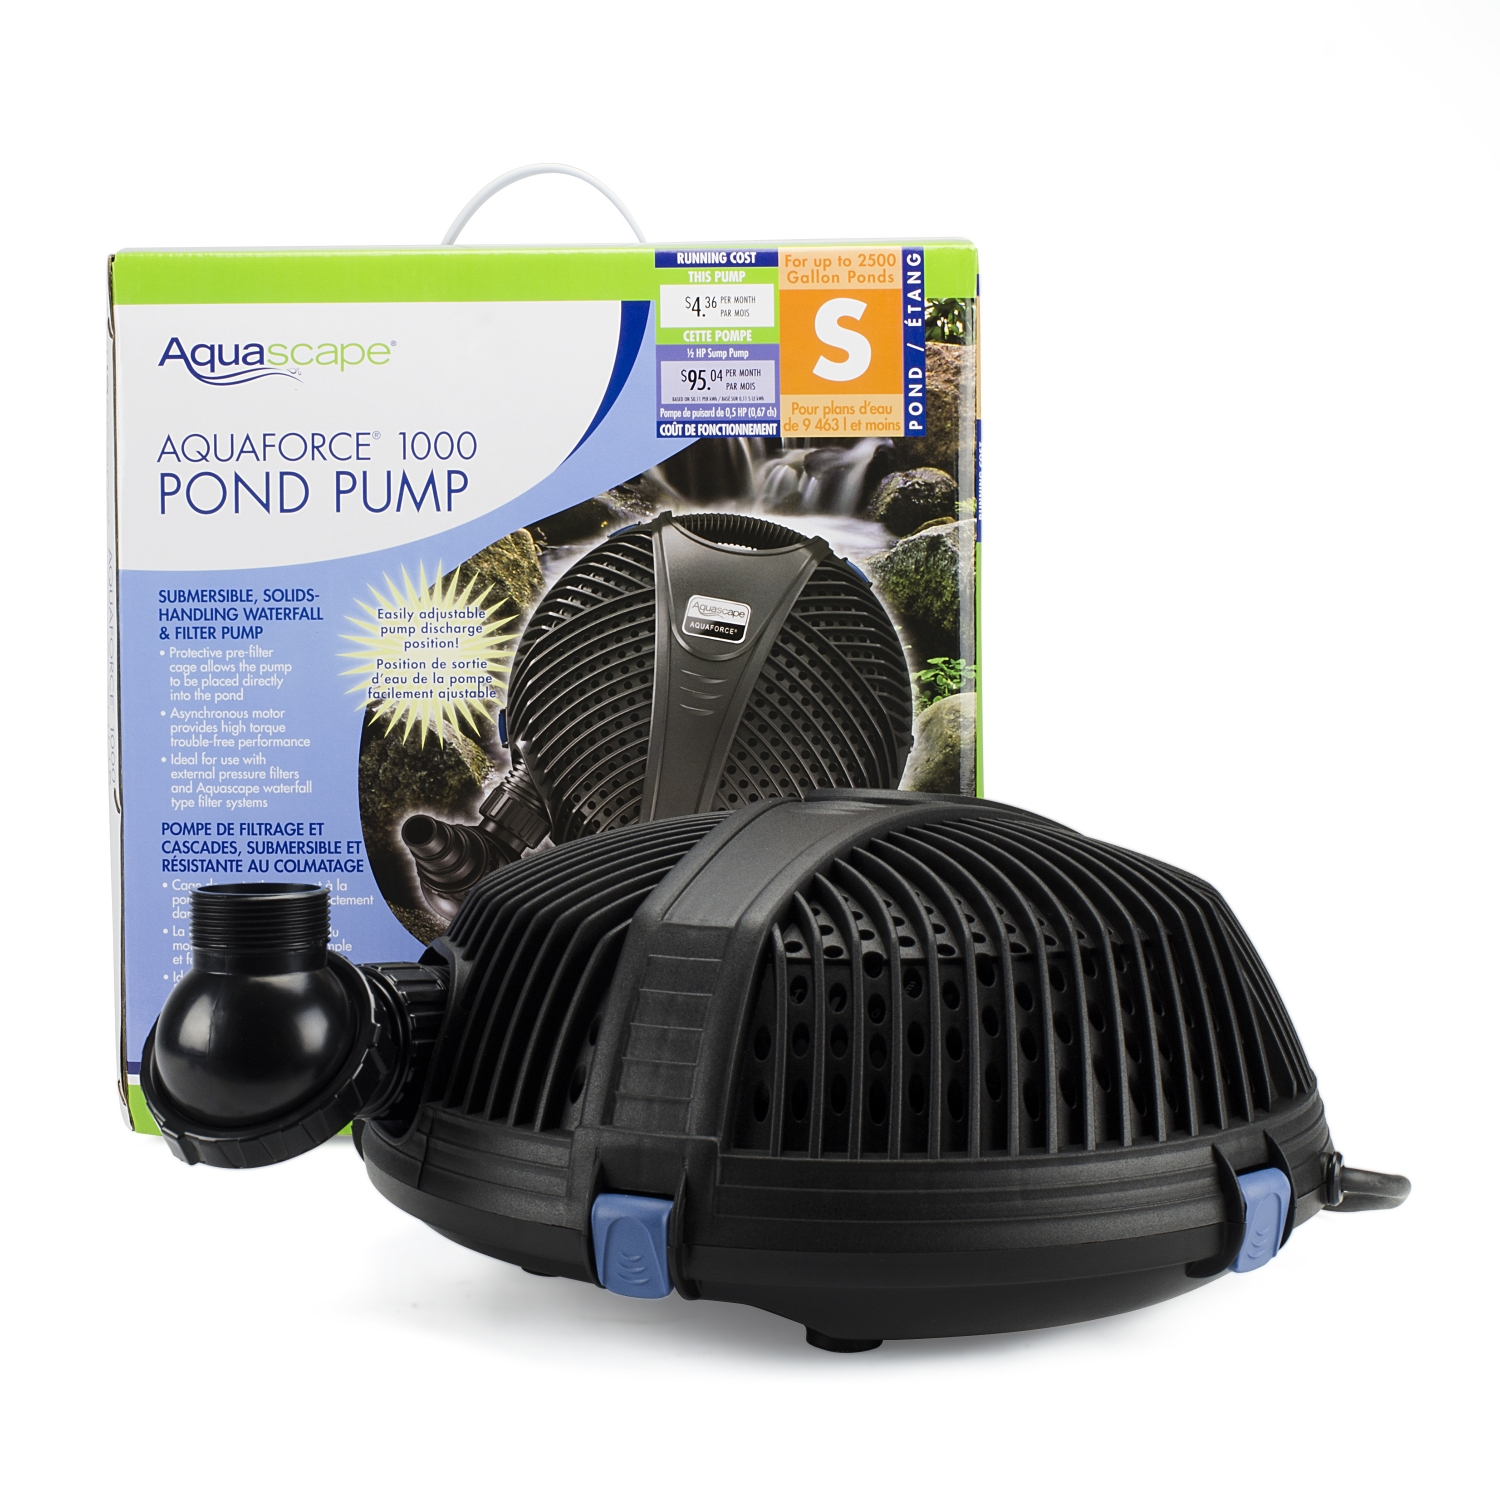 Aquascape Pond Pumps, Low GPH Pumps, High GPH Pumps & More